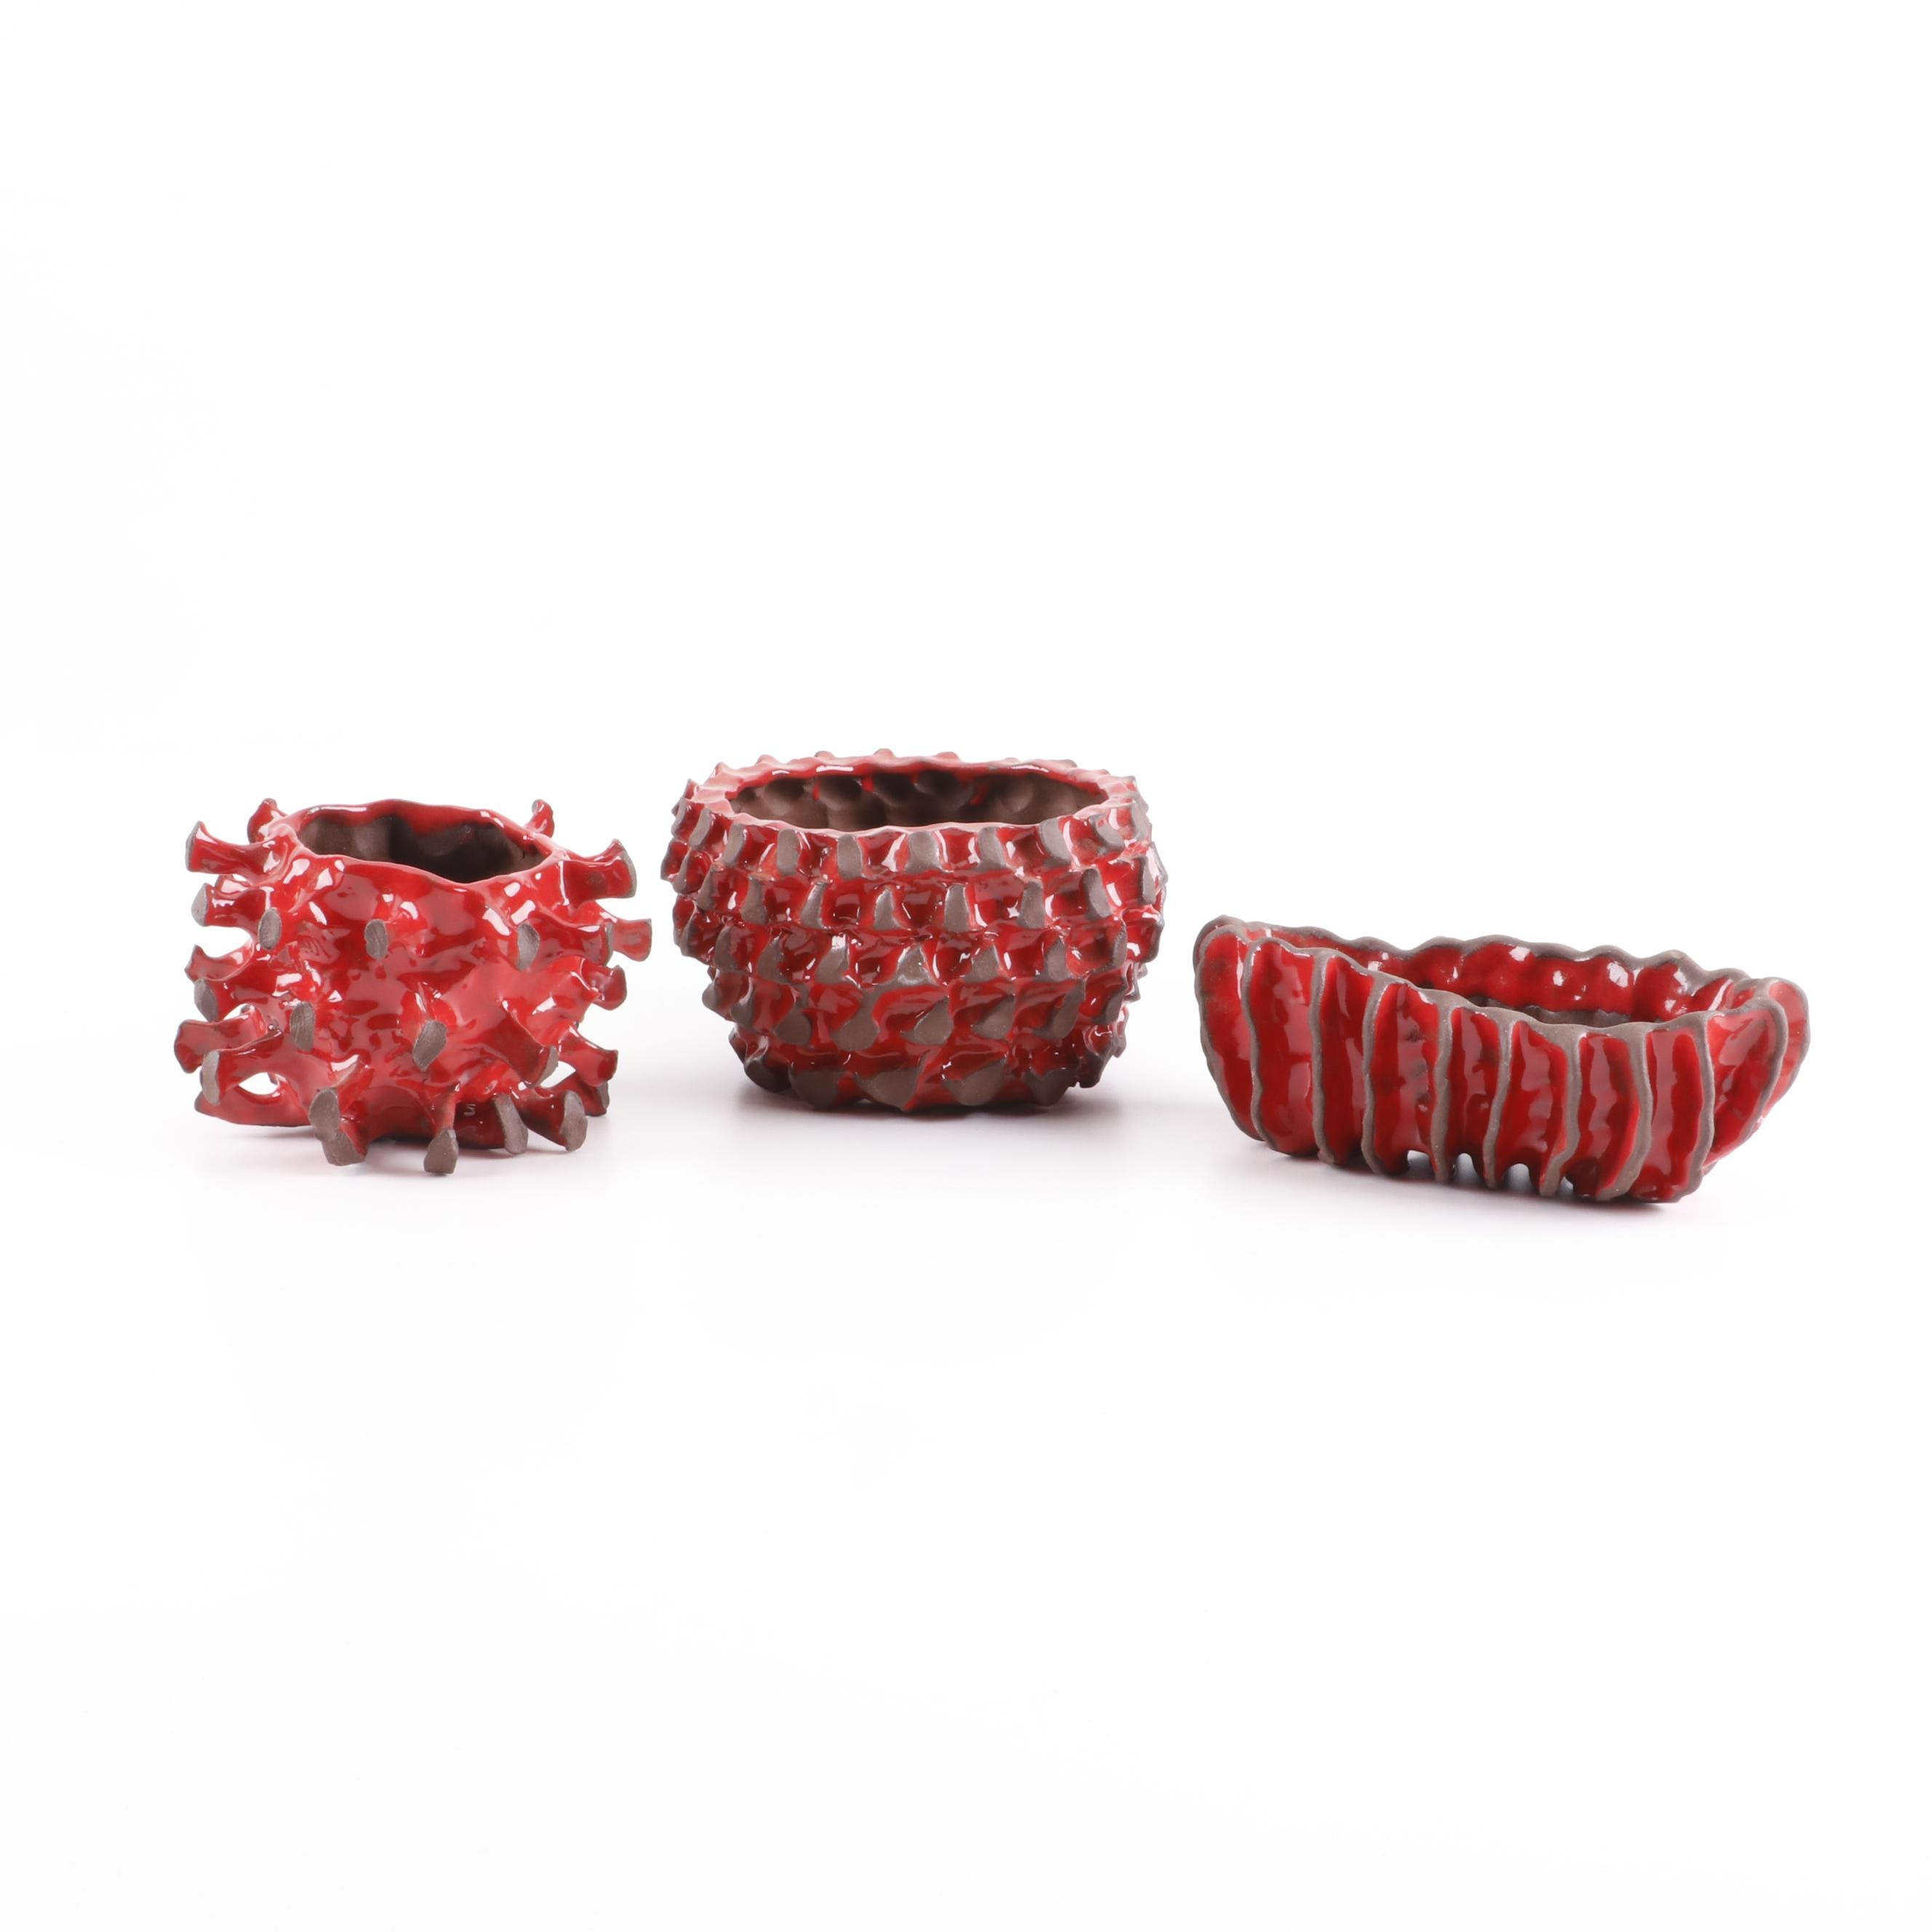 Mike Cone Red Glazed Textured Stoneware Planters (Attributed)